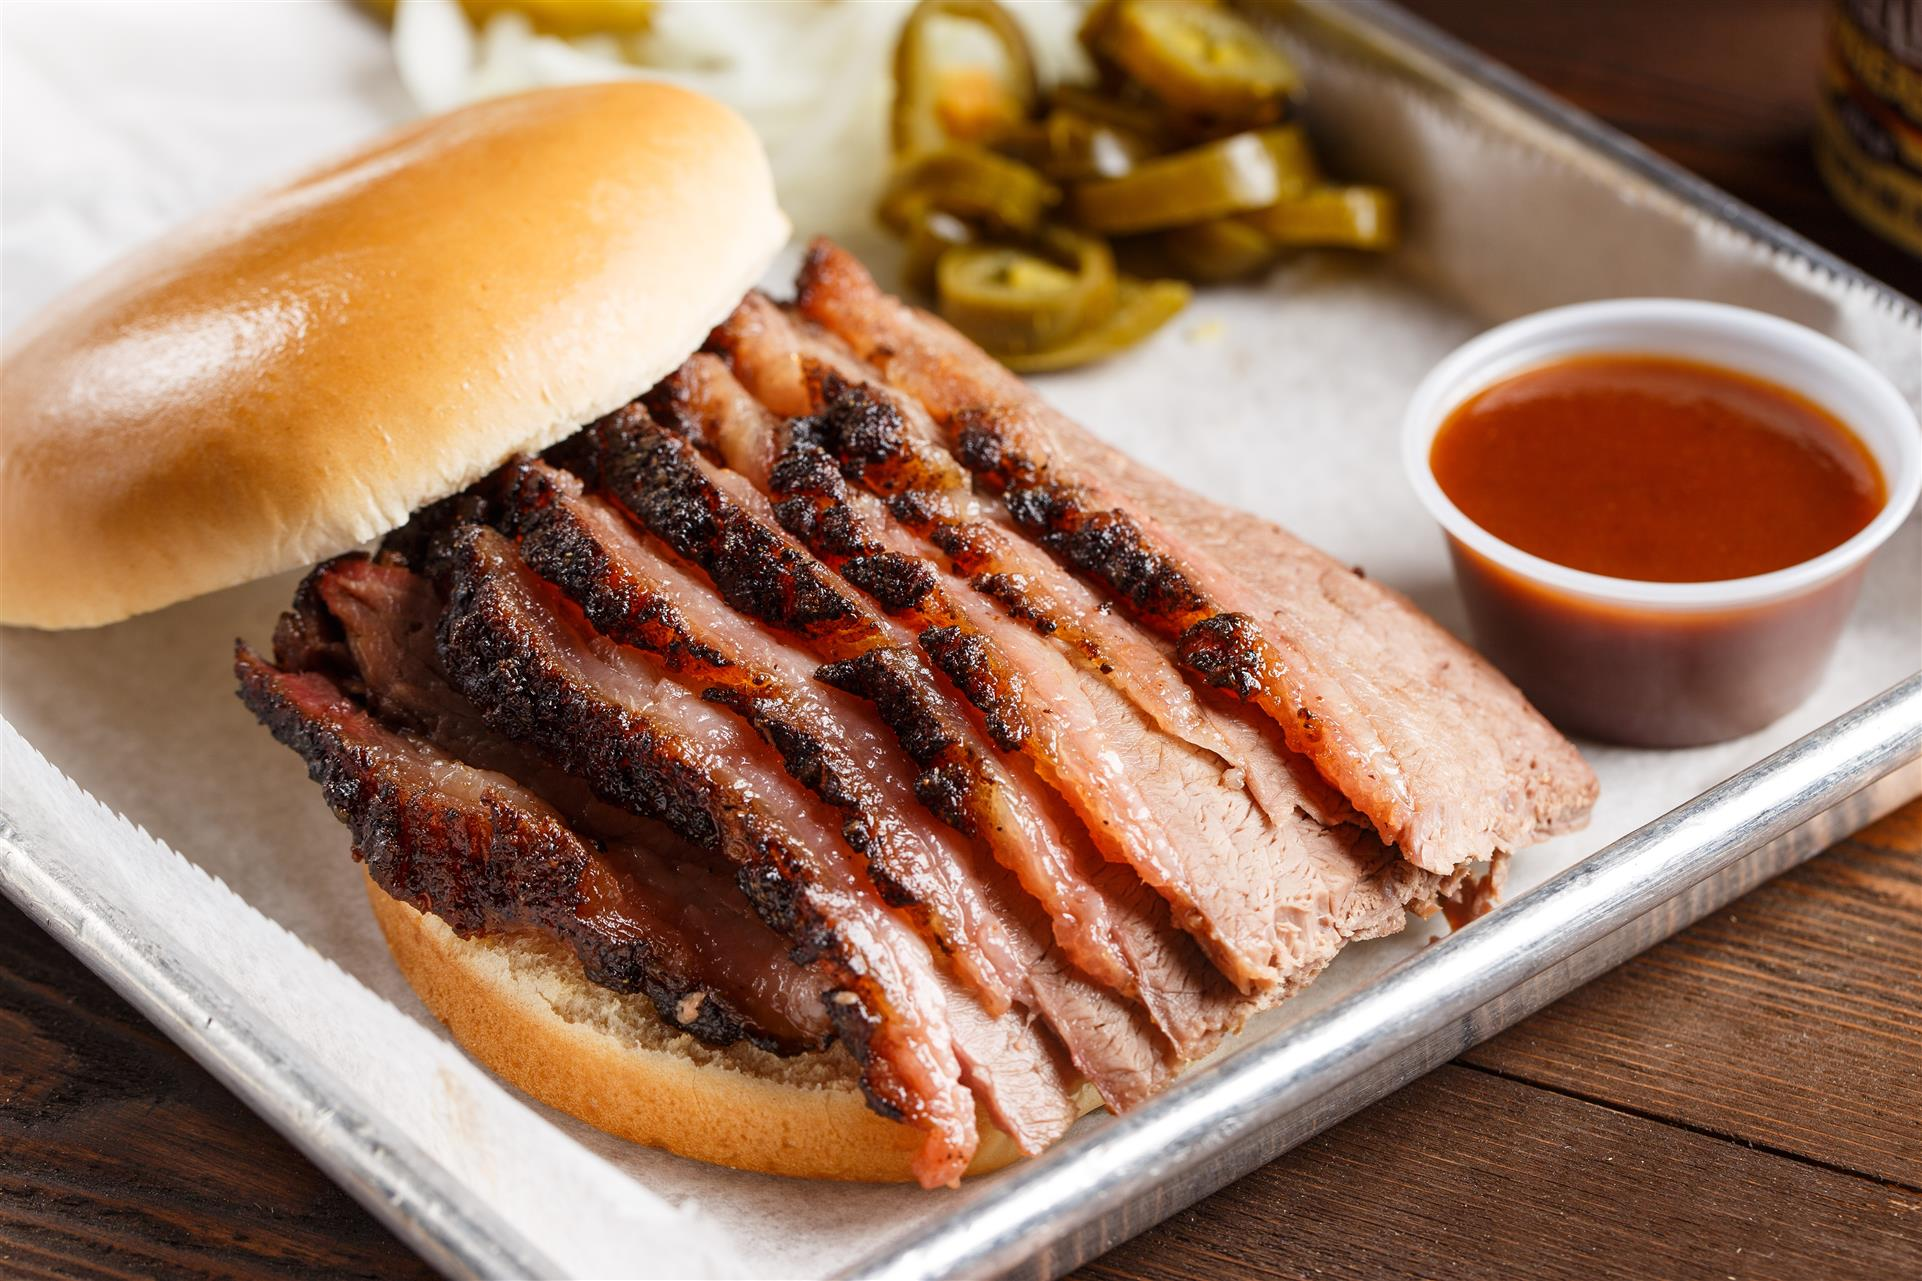 Sliced Brisket on a roll with a side of BBQ sauce